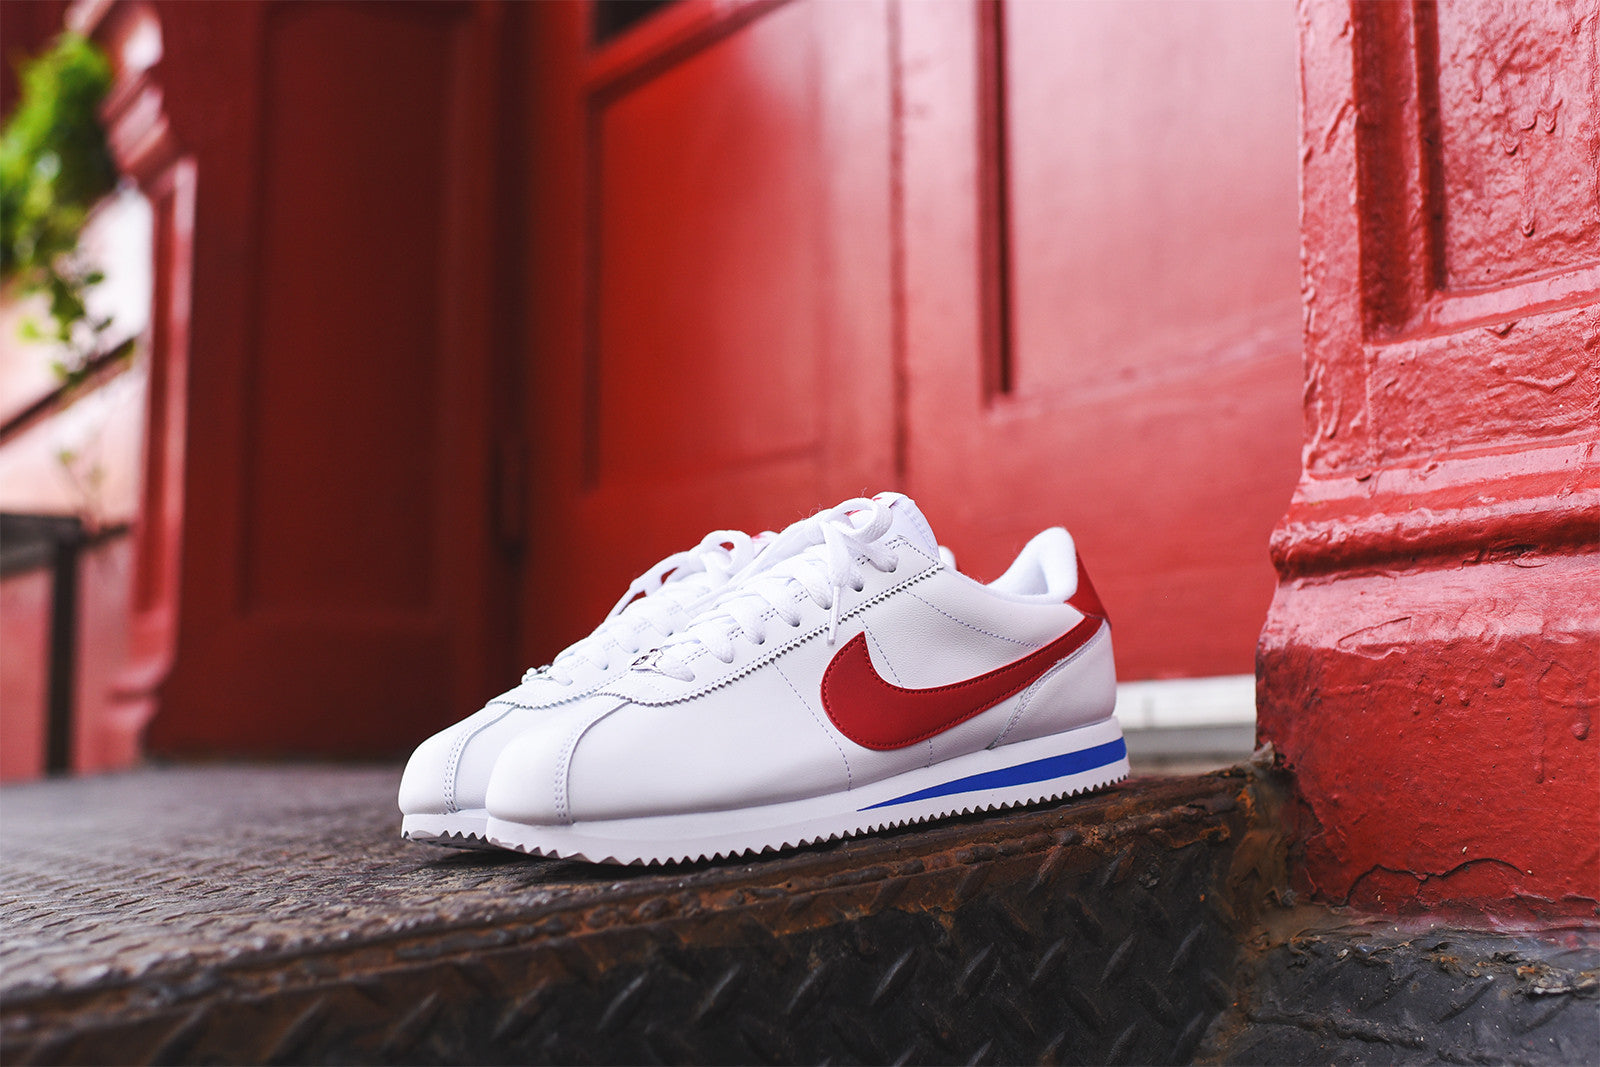 low priced 79541 6c208 ... Classic Cortez Leather USA Nike Cortez Basic Leather OG – Blue White  Red ...